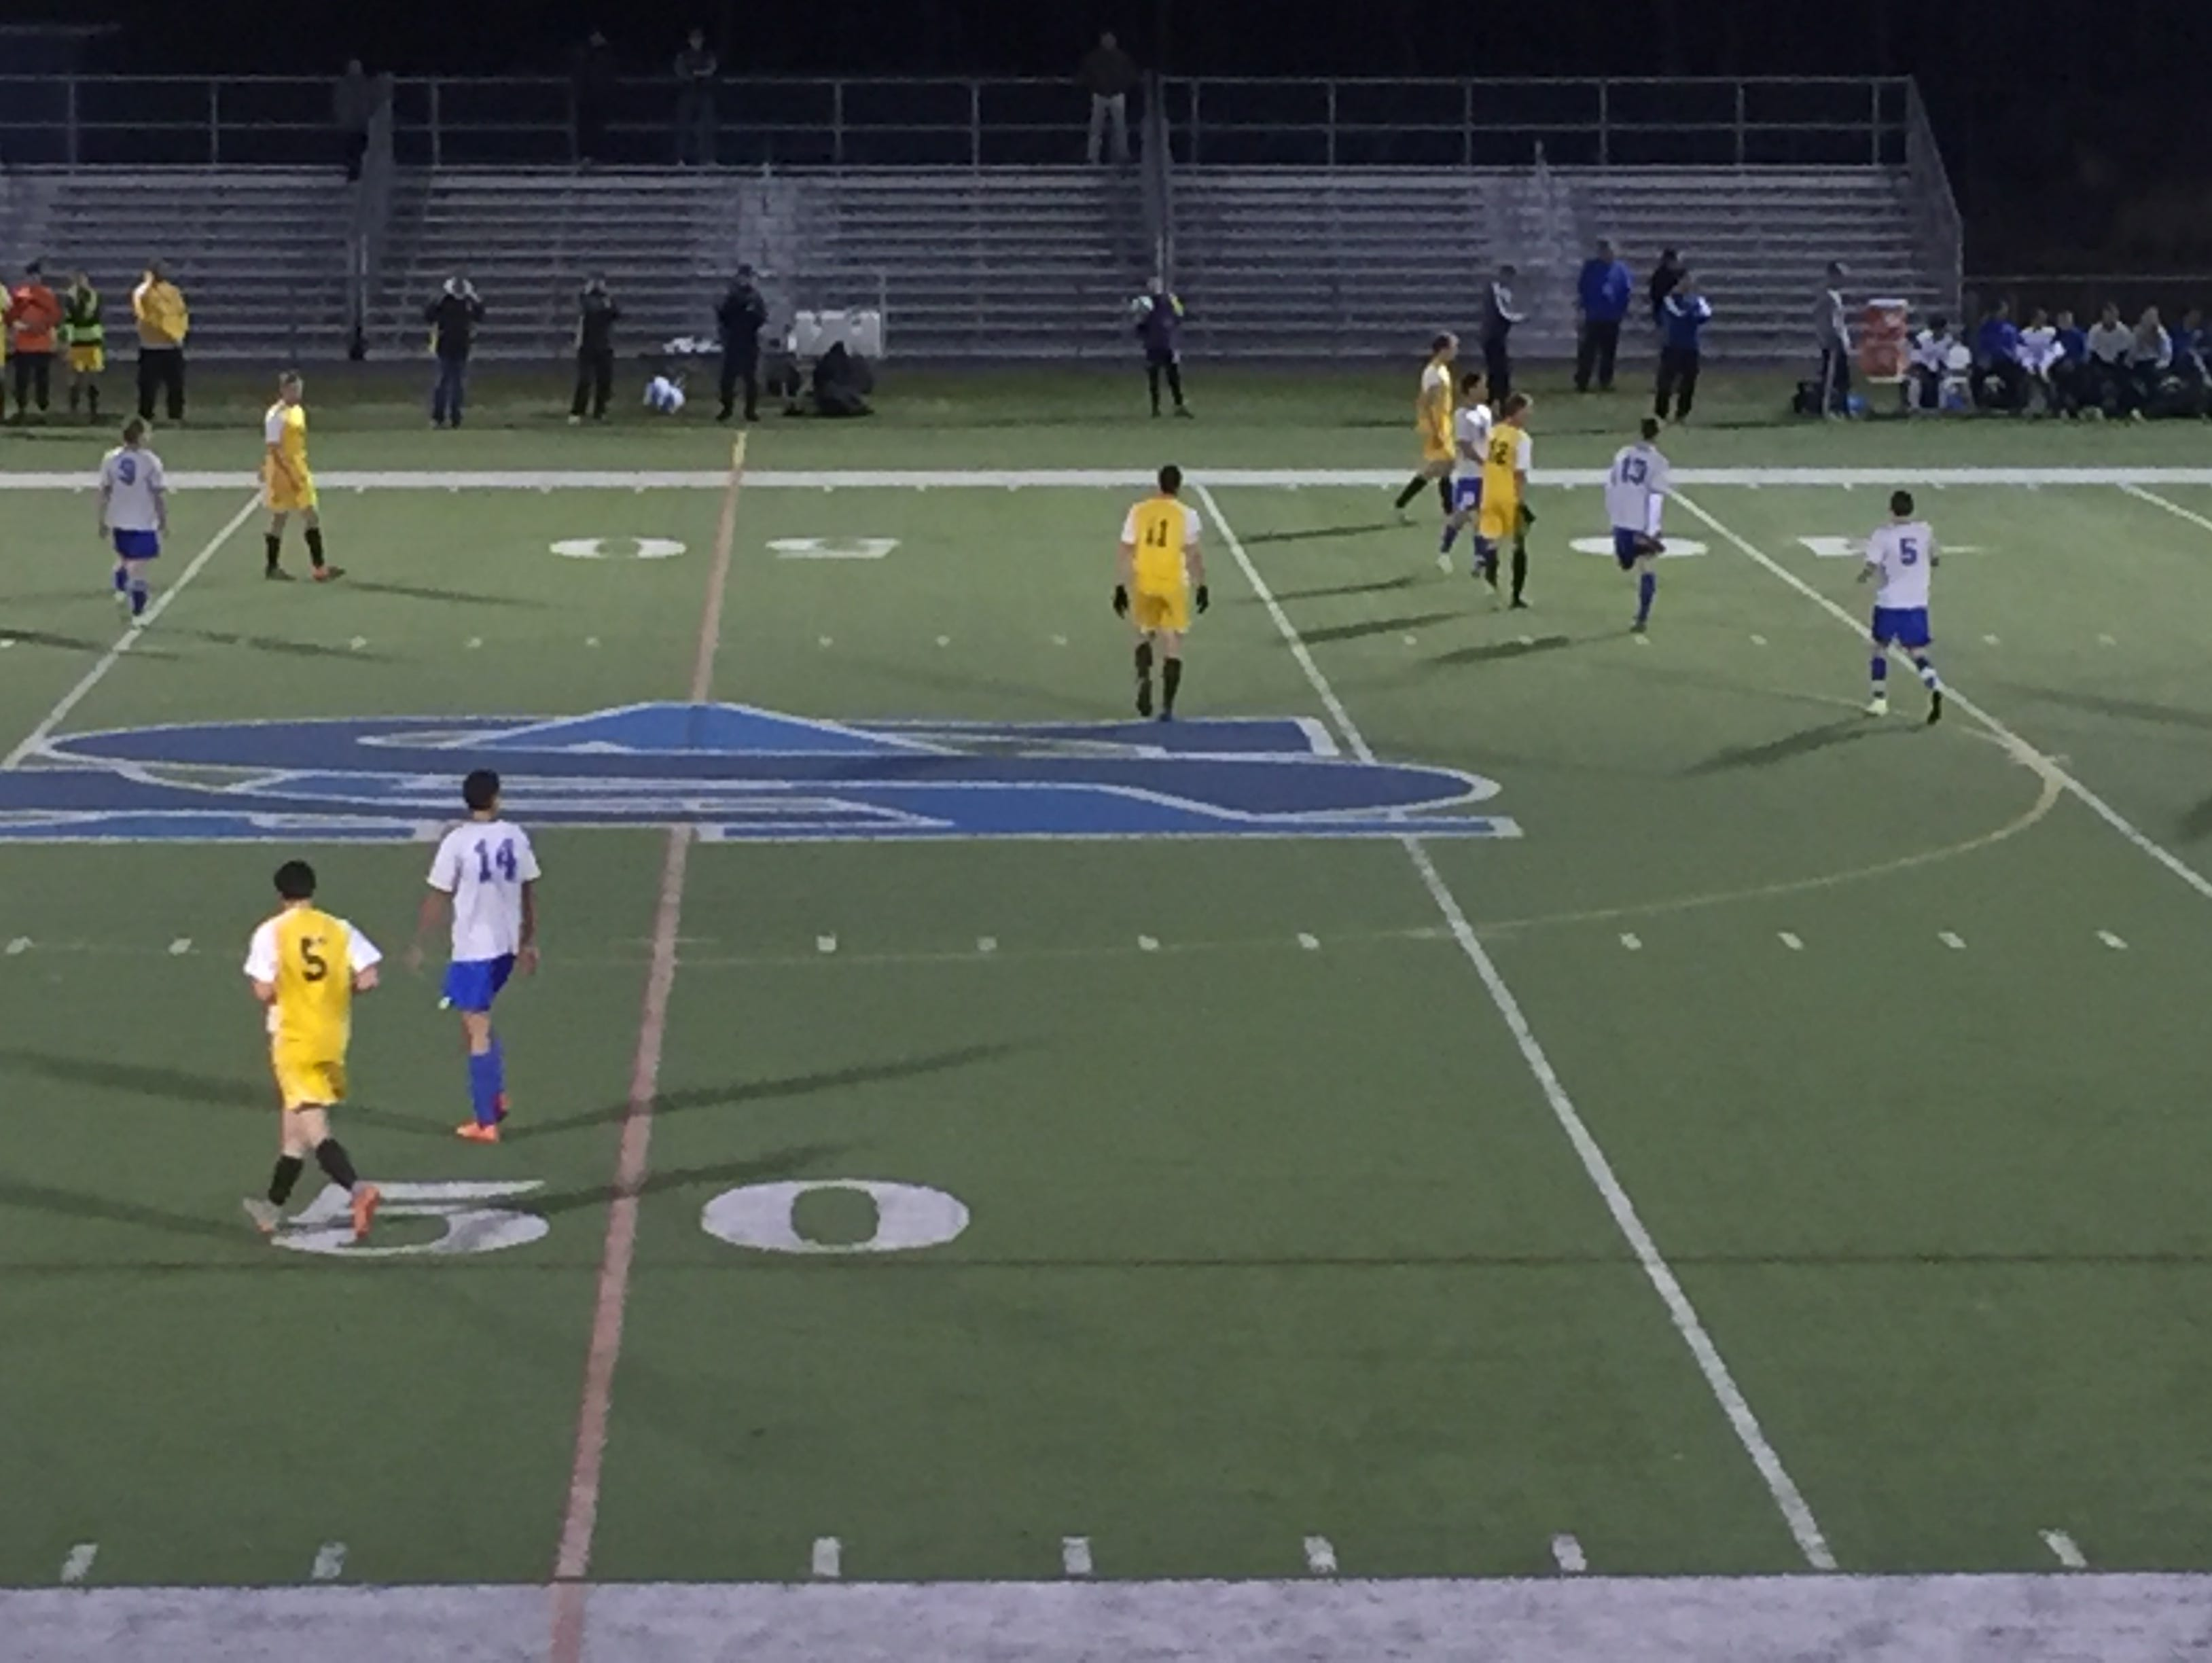 Holmdel boys soccer vs Delran in an NJSIAA Group 2 state semifinal on Tuesday, Nov. 17, 2015 at St. Augustine Prep High School